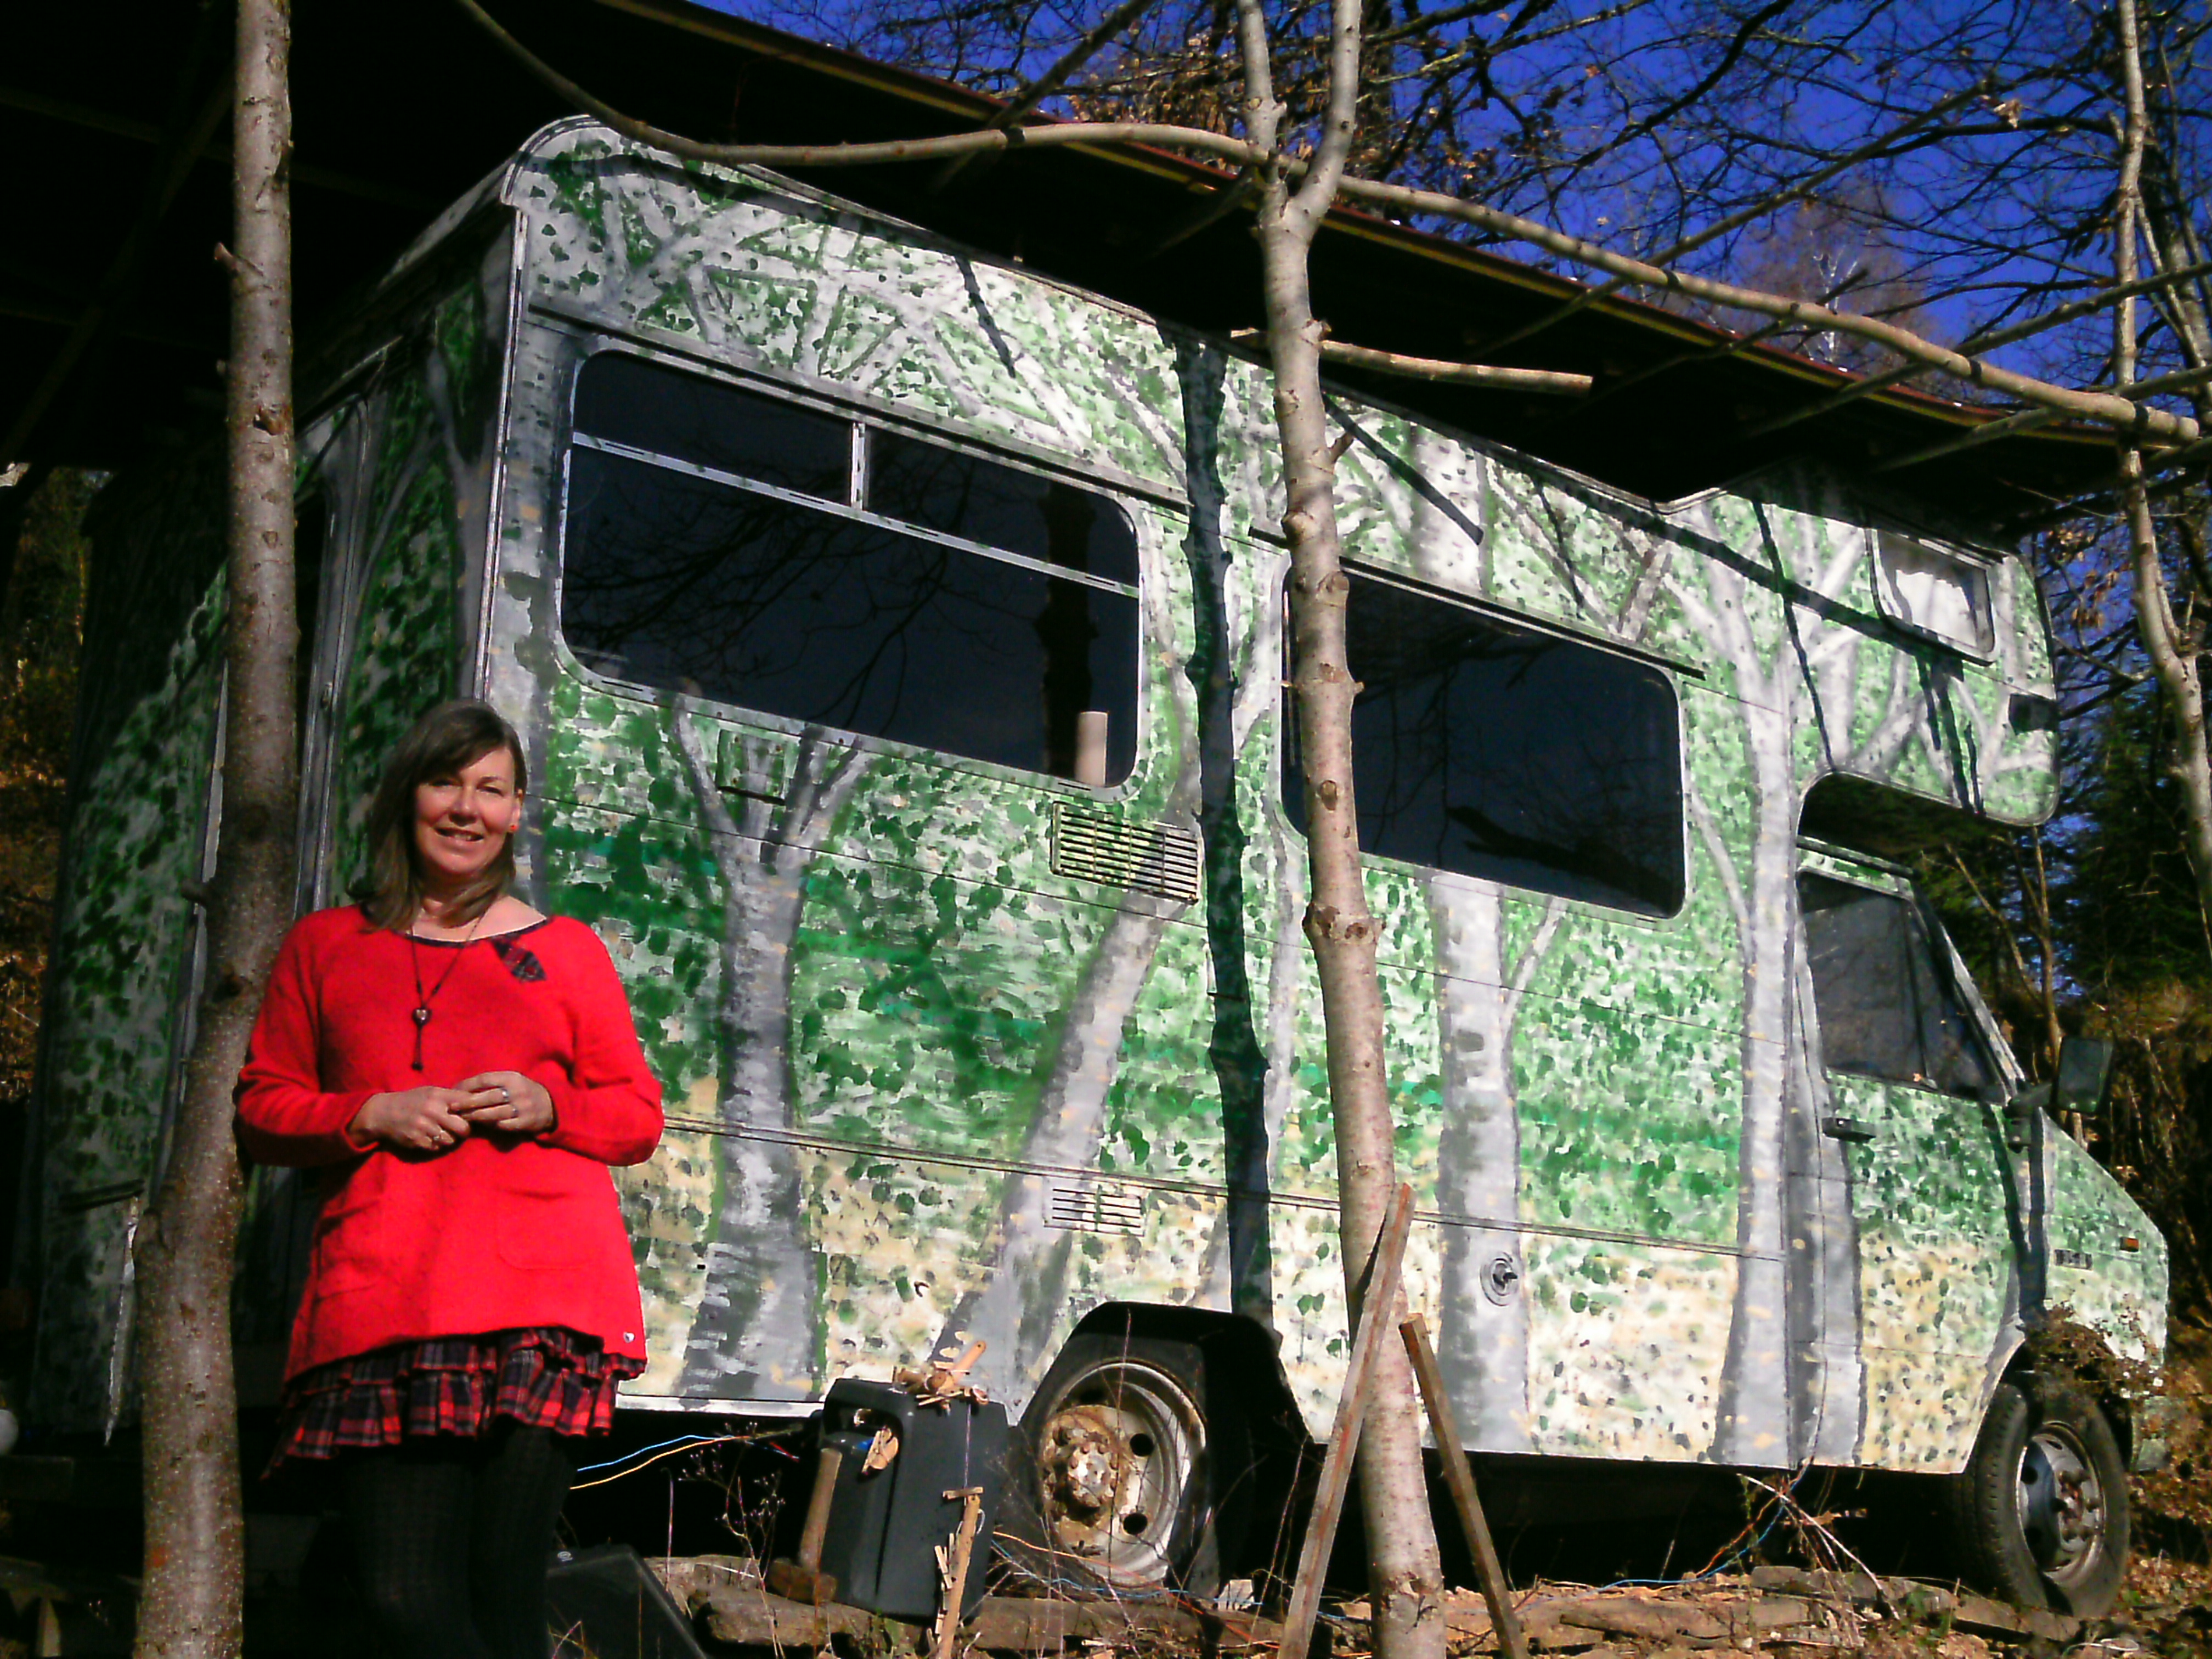 Ann and campervan